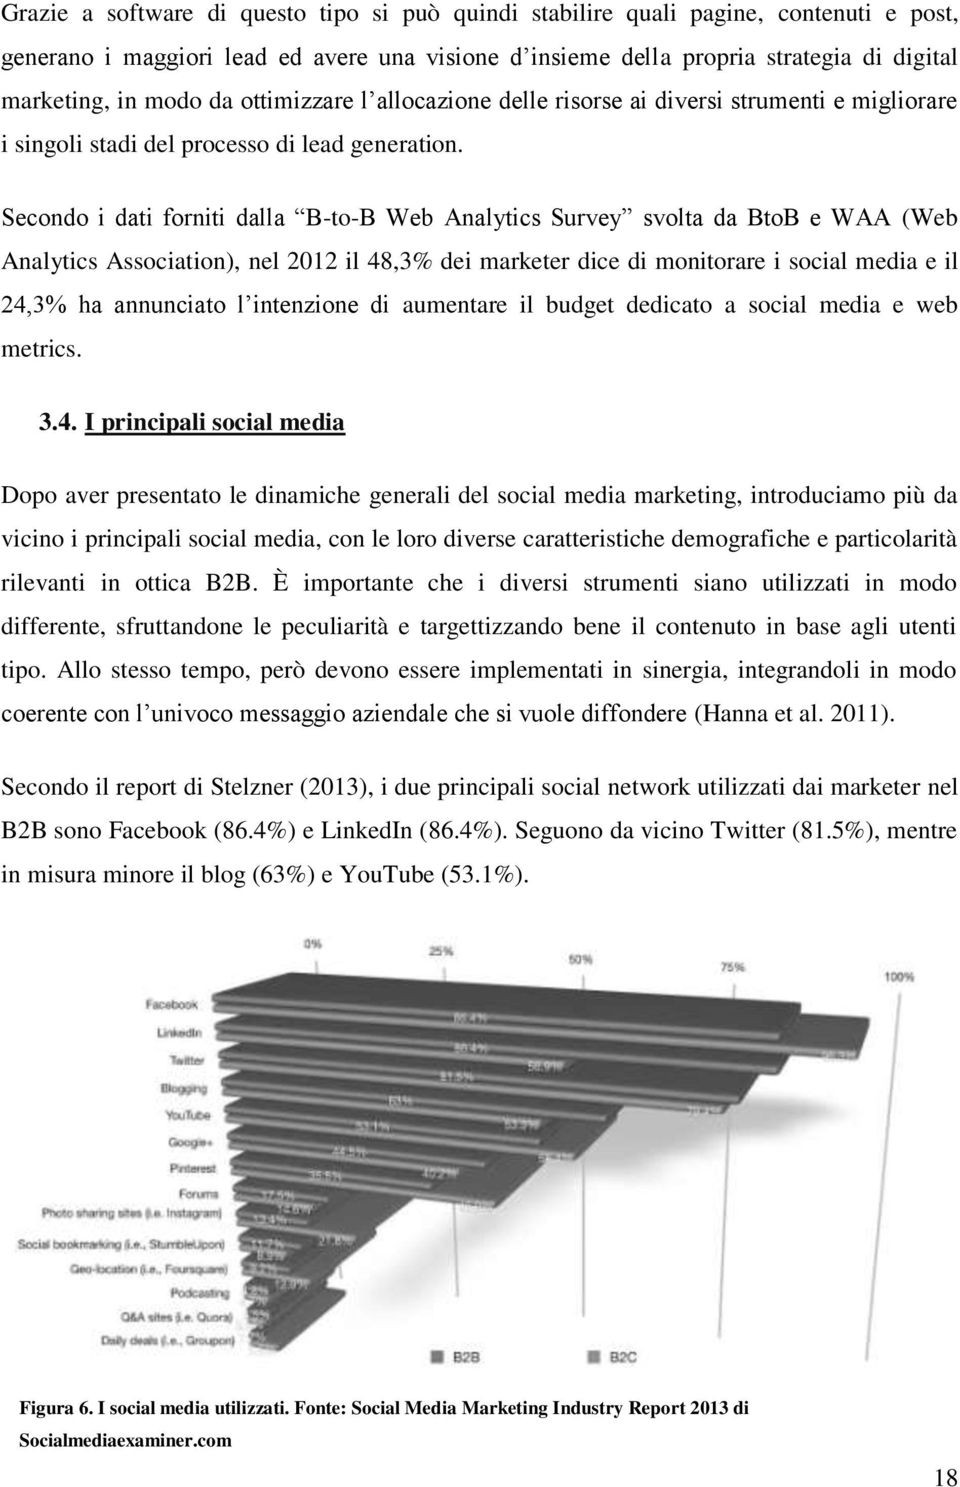 Secondo i dati forniti dalla B-to-B Web Analytics Survey svolta da BtoB e WAA (Web Analytics Association), nel 2012 il 48,3% dei marketer dice di monitorare i social media e il 24,3% ha annunciato l